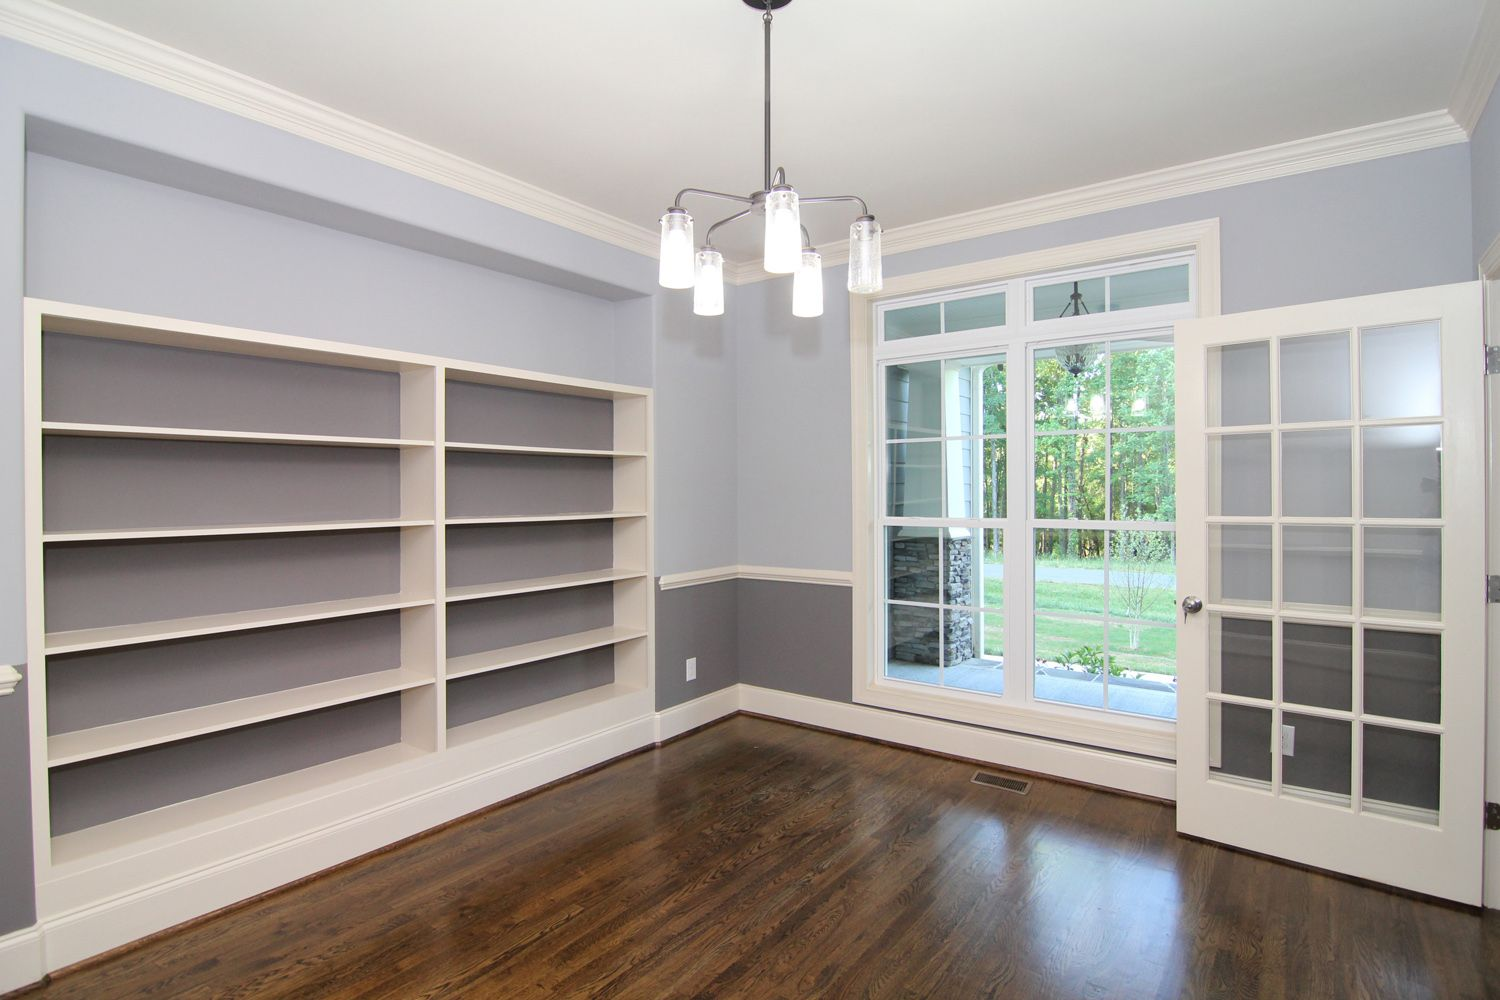 french doors for home office. Large Windows And Glass French Doors Light Up This Home Office. For Office I